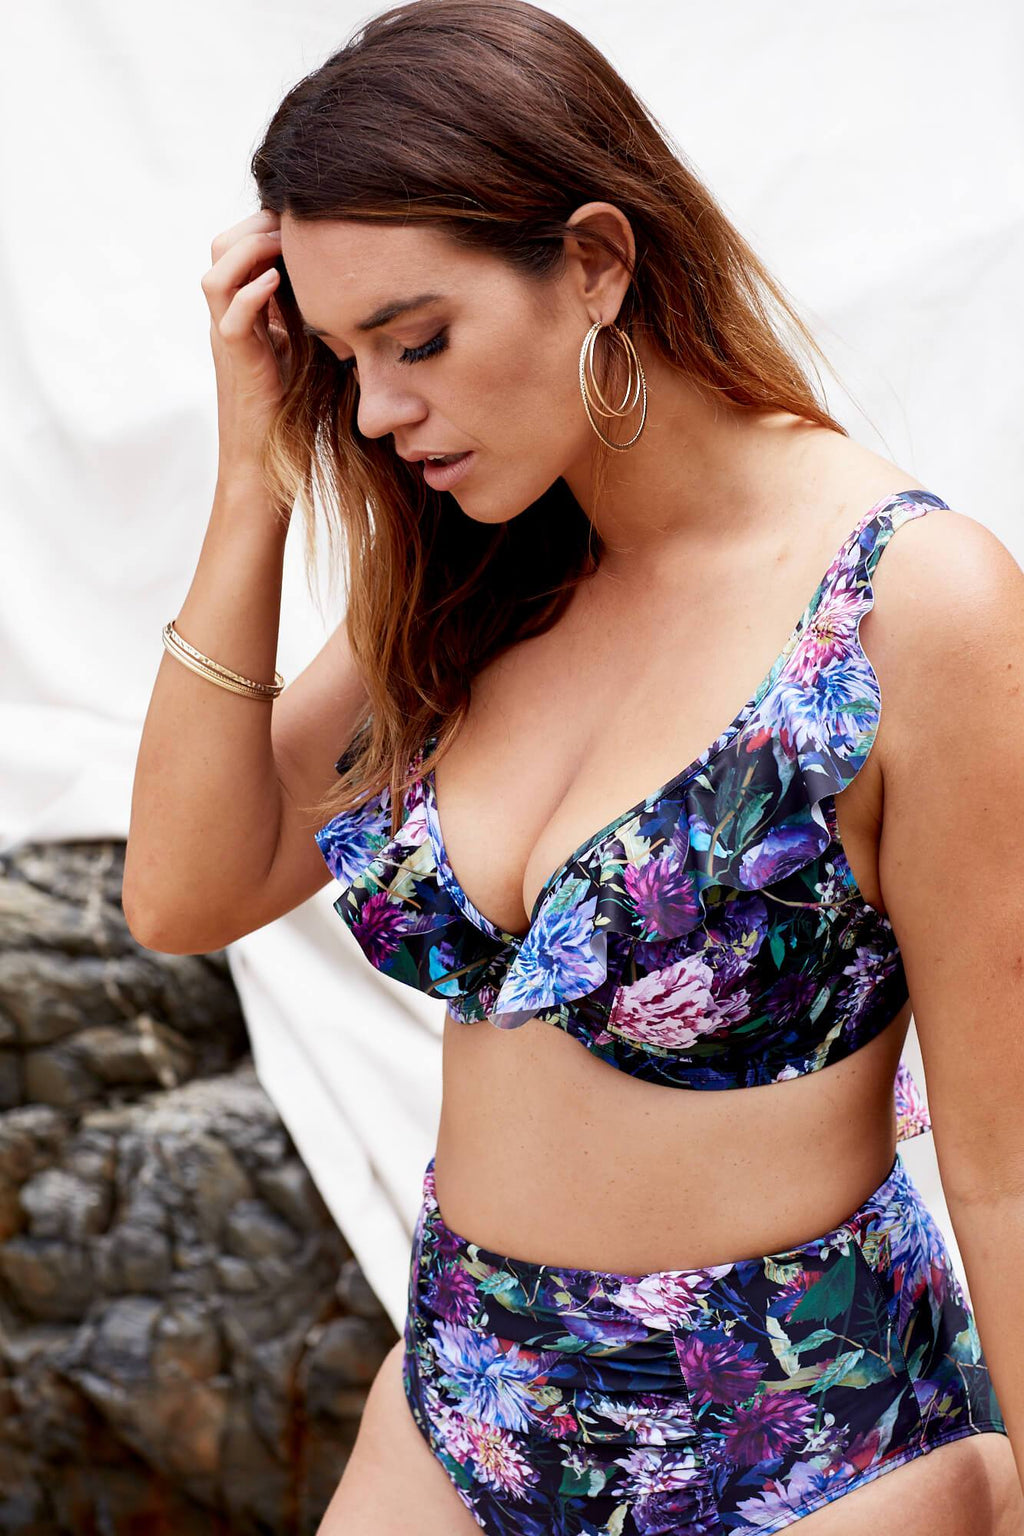 Marvell-Lane Marvell-Lane - Ava Bikini Top in Dahlia - Nomads Cove